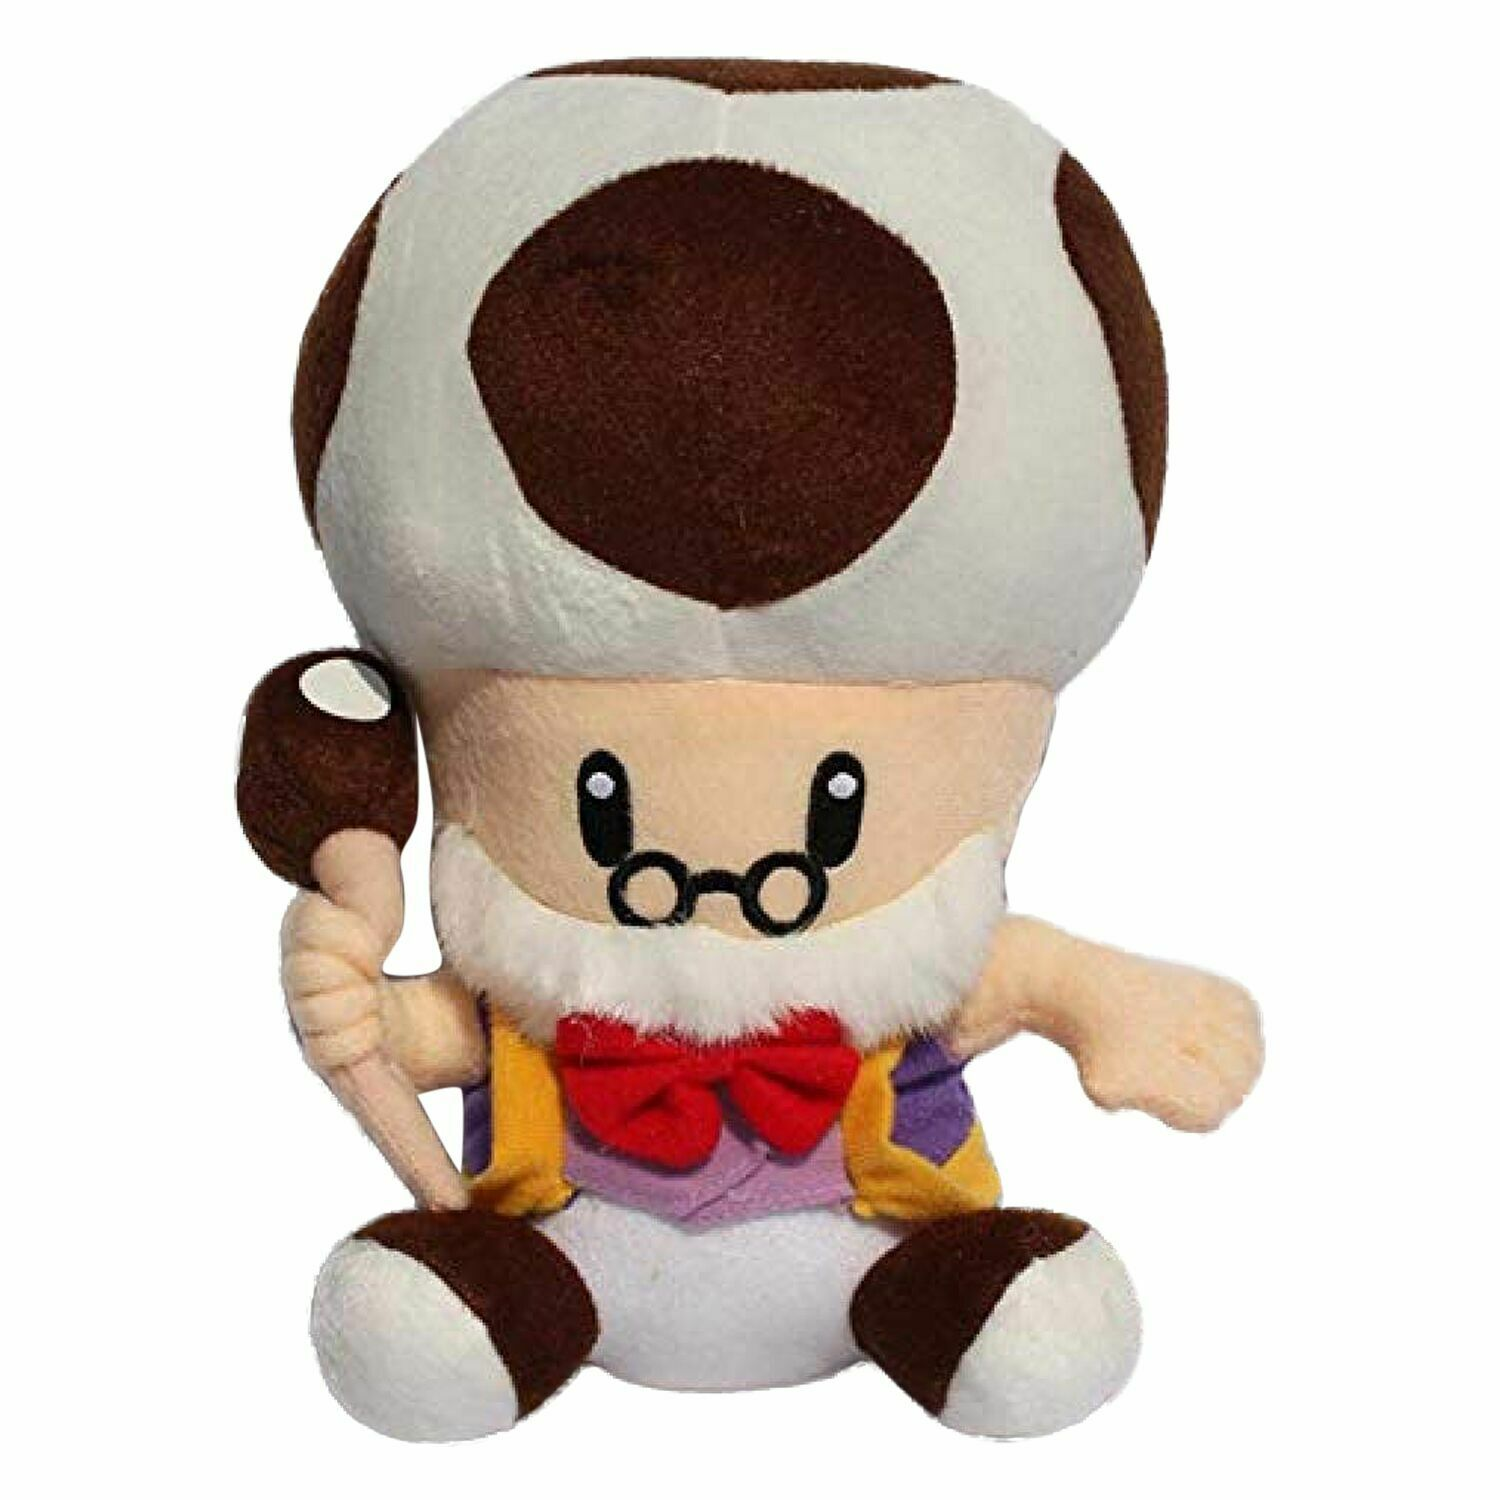 Mario Bro 10 Inch Mushroom Brown Toadsworth Plush Toad Doll For